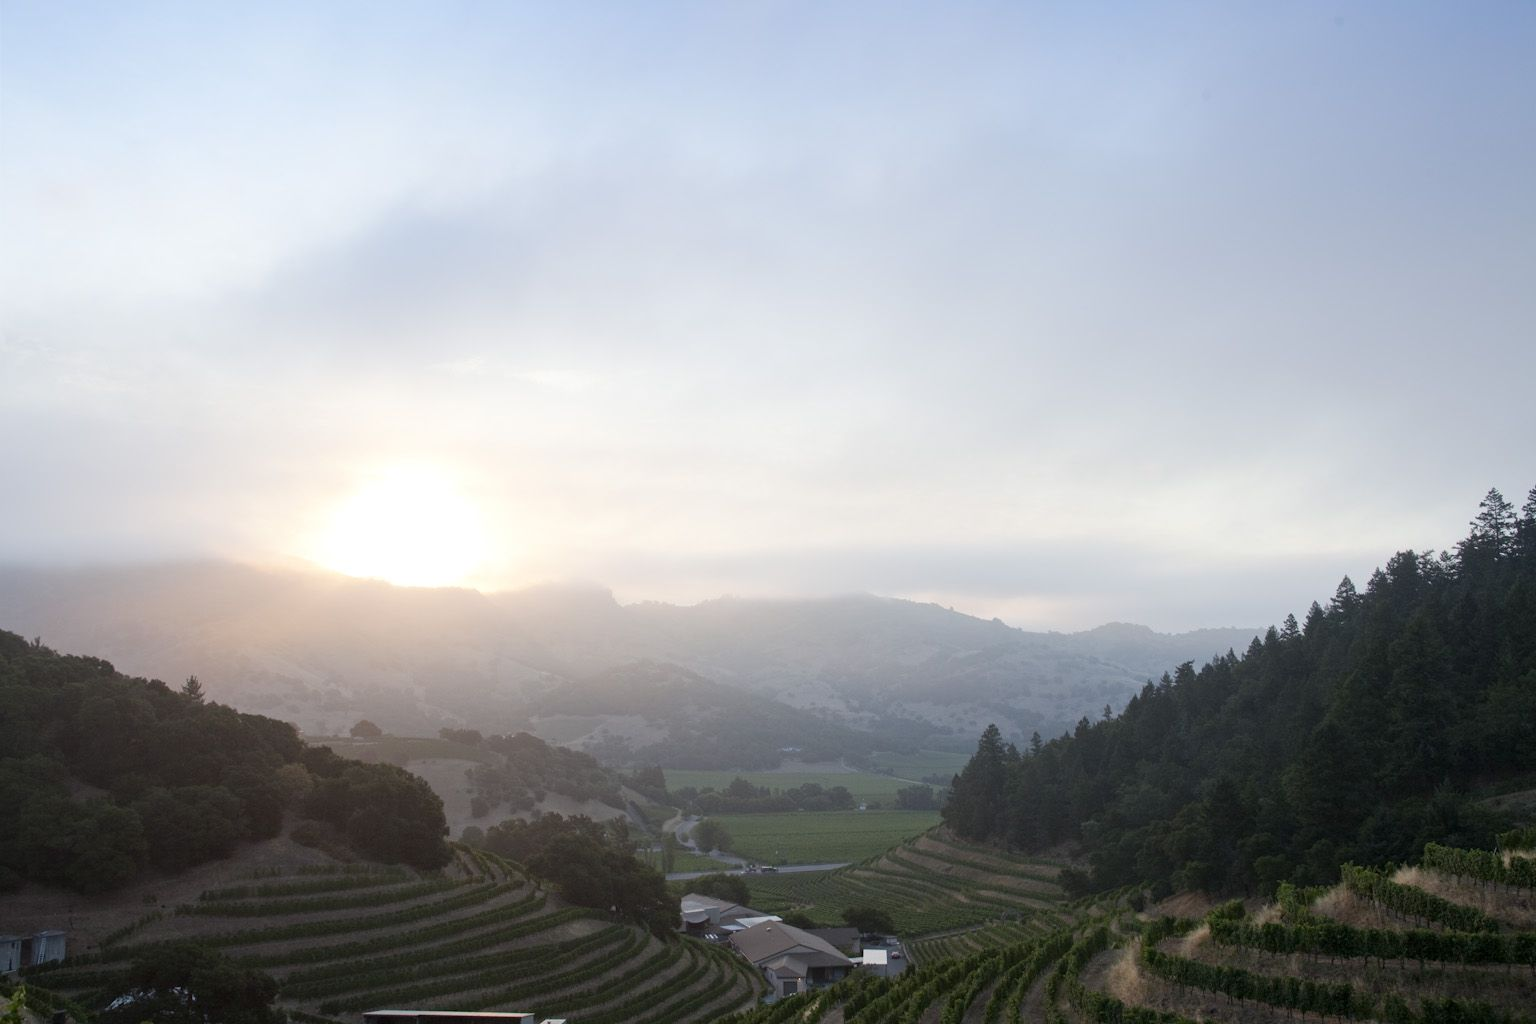 Sun rise from above Pine Ridge Vineyards, | The good place ...